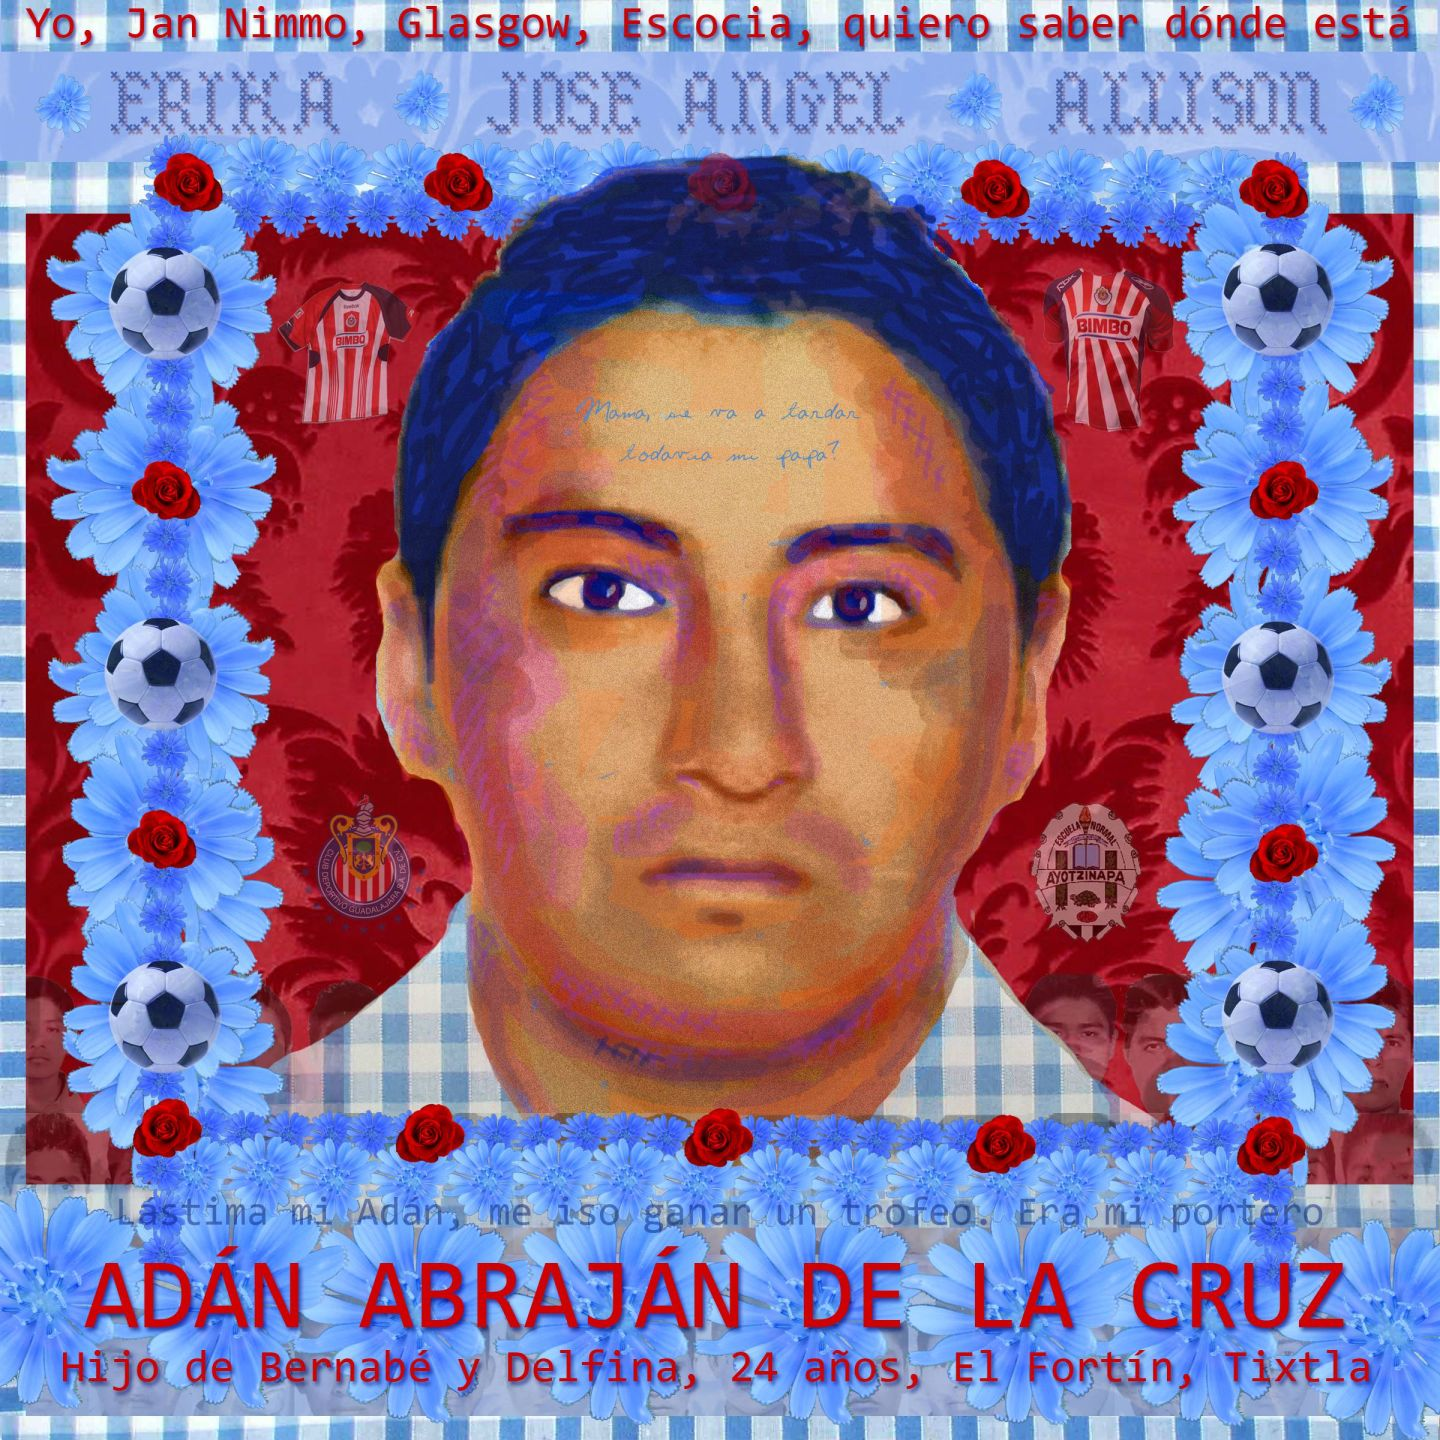 Portrait of Adan Abrajan de la Cruz by Jan Nimo